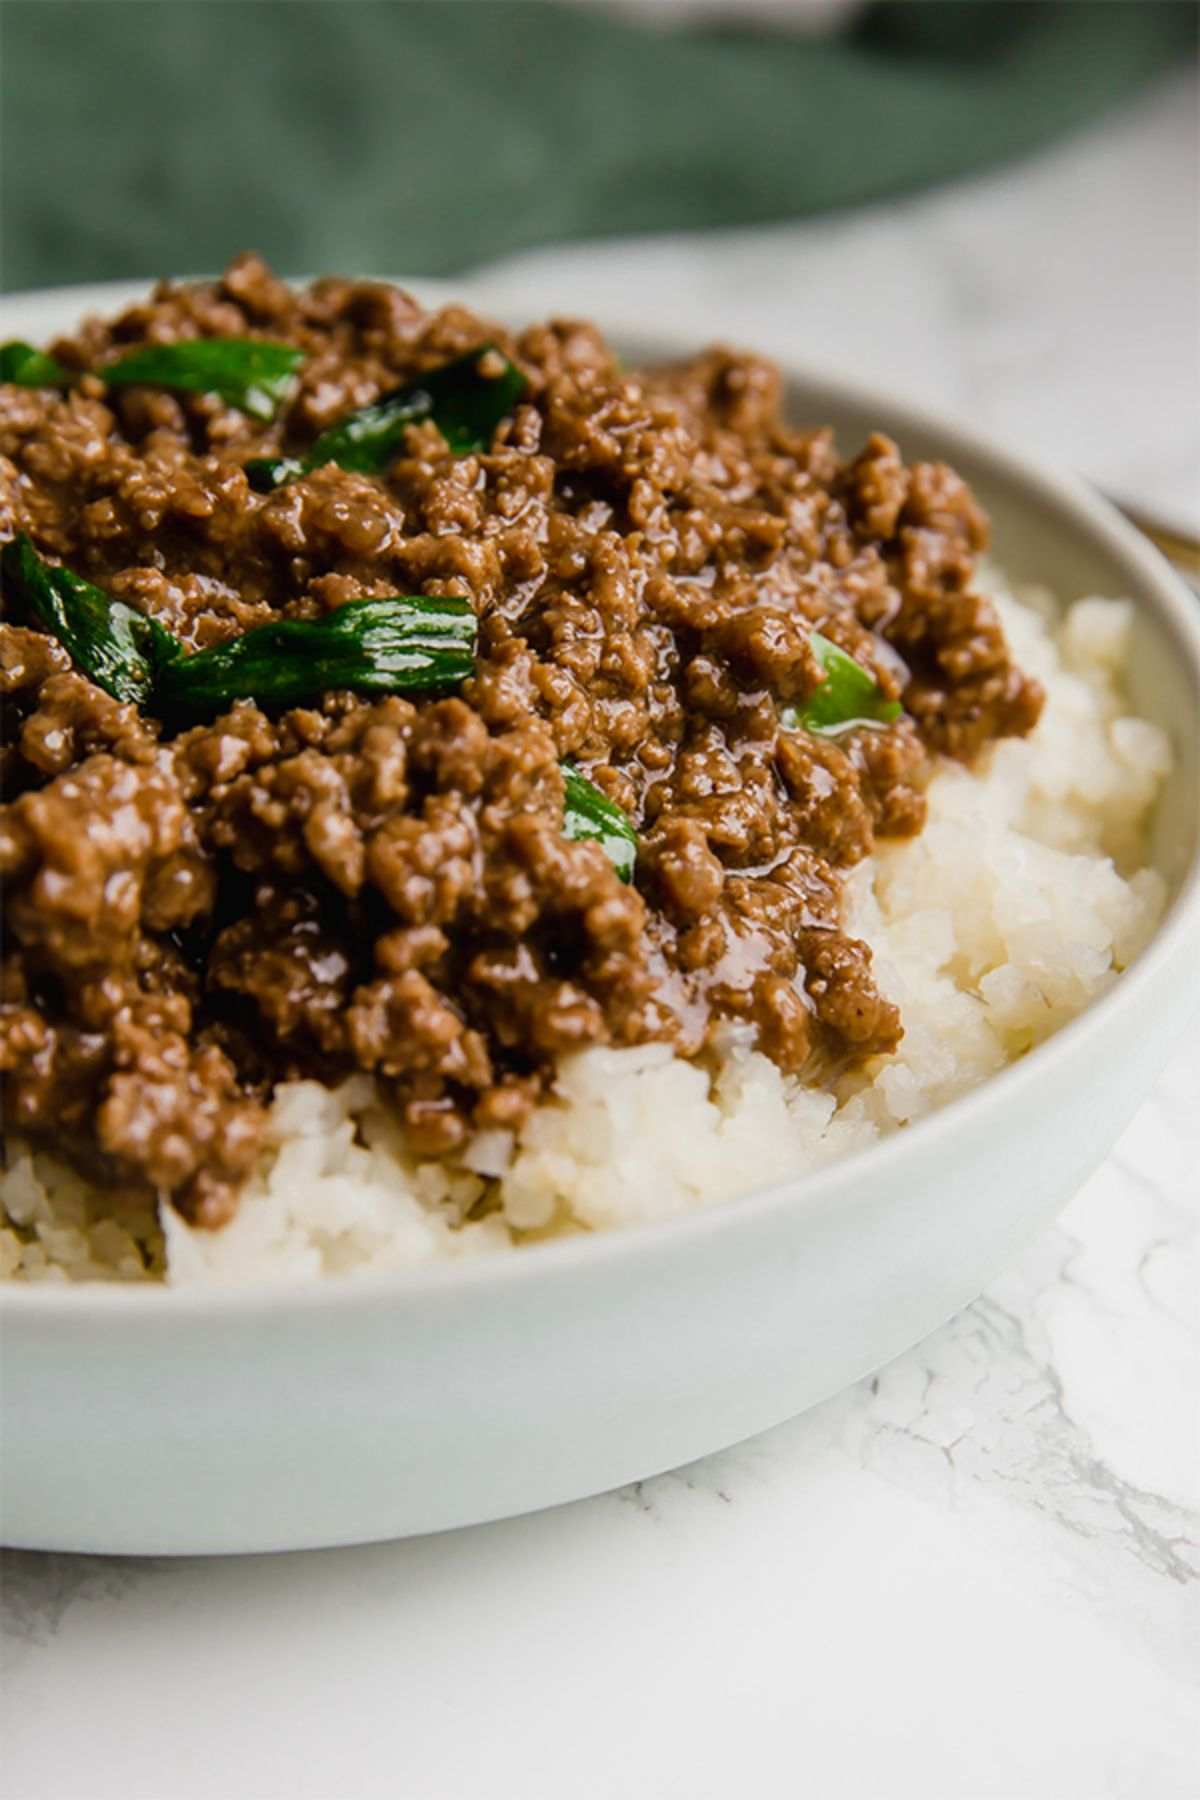 A white bowl of ground beef in sauce on top of rice